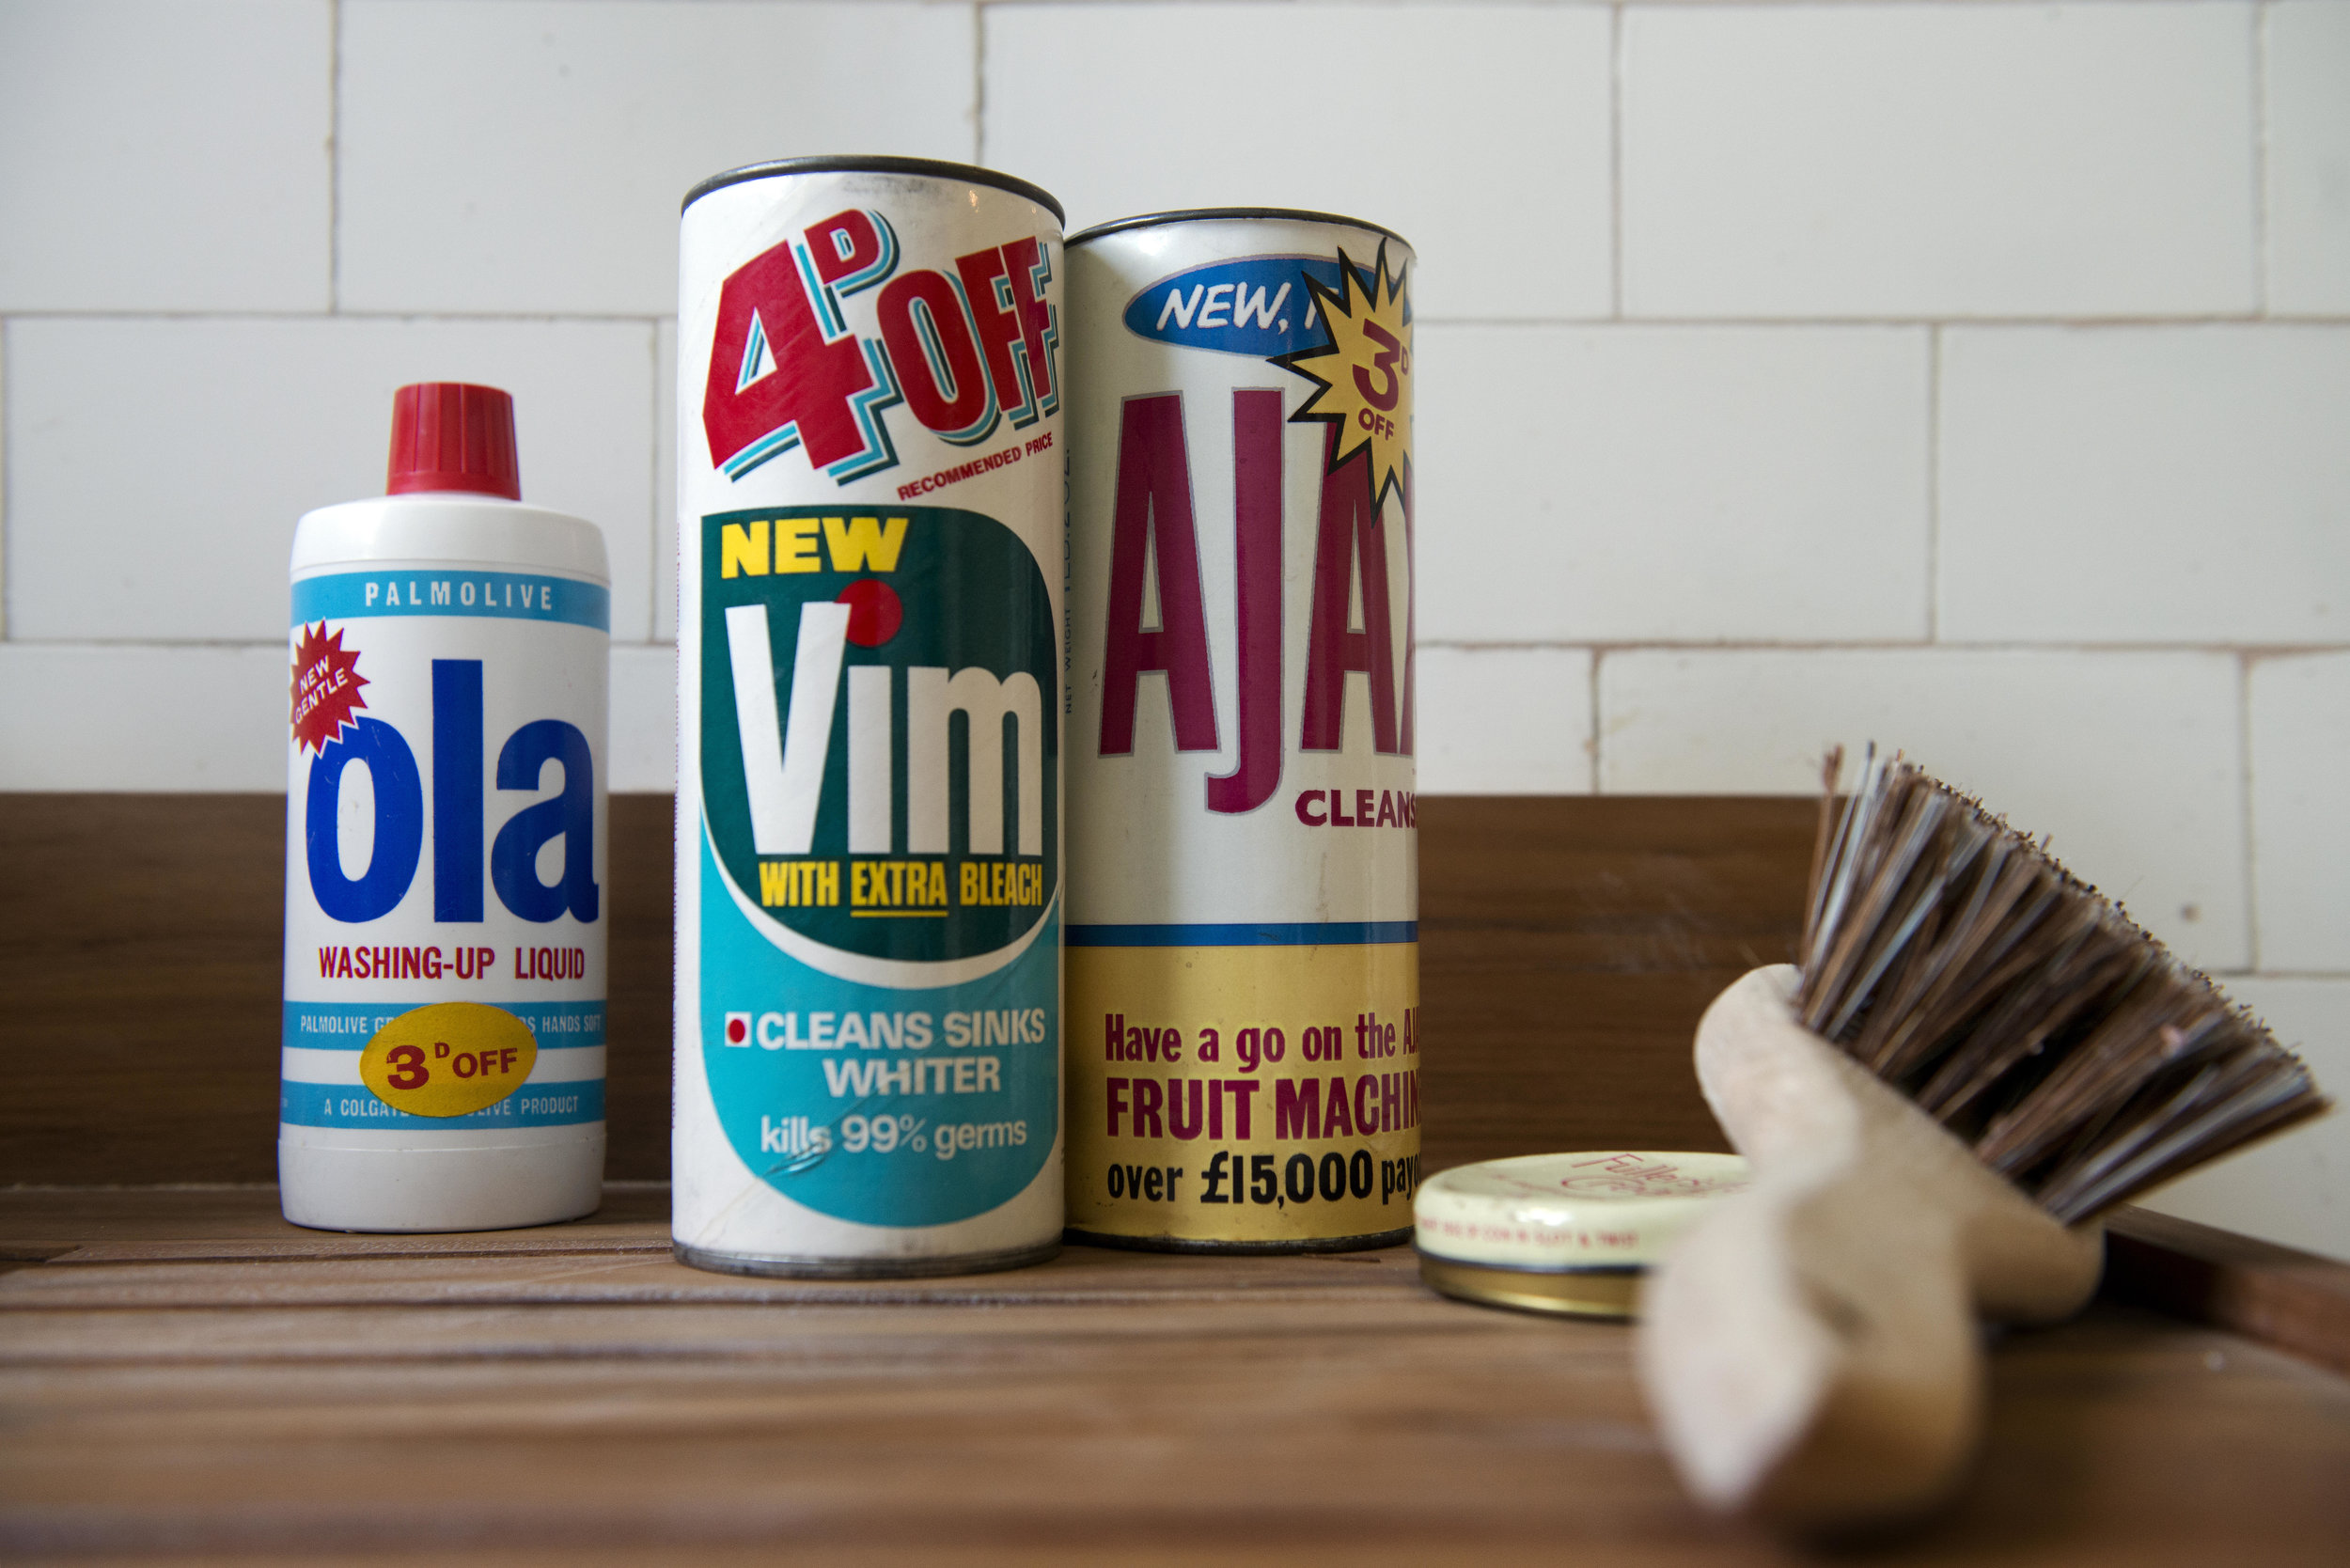 Our cleaning cupboards were always full of products like this